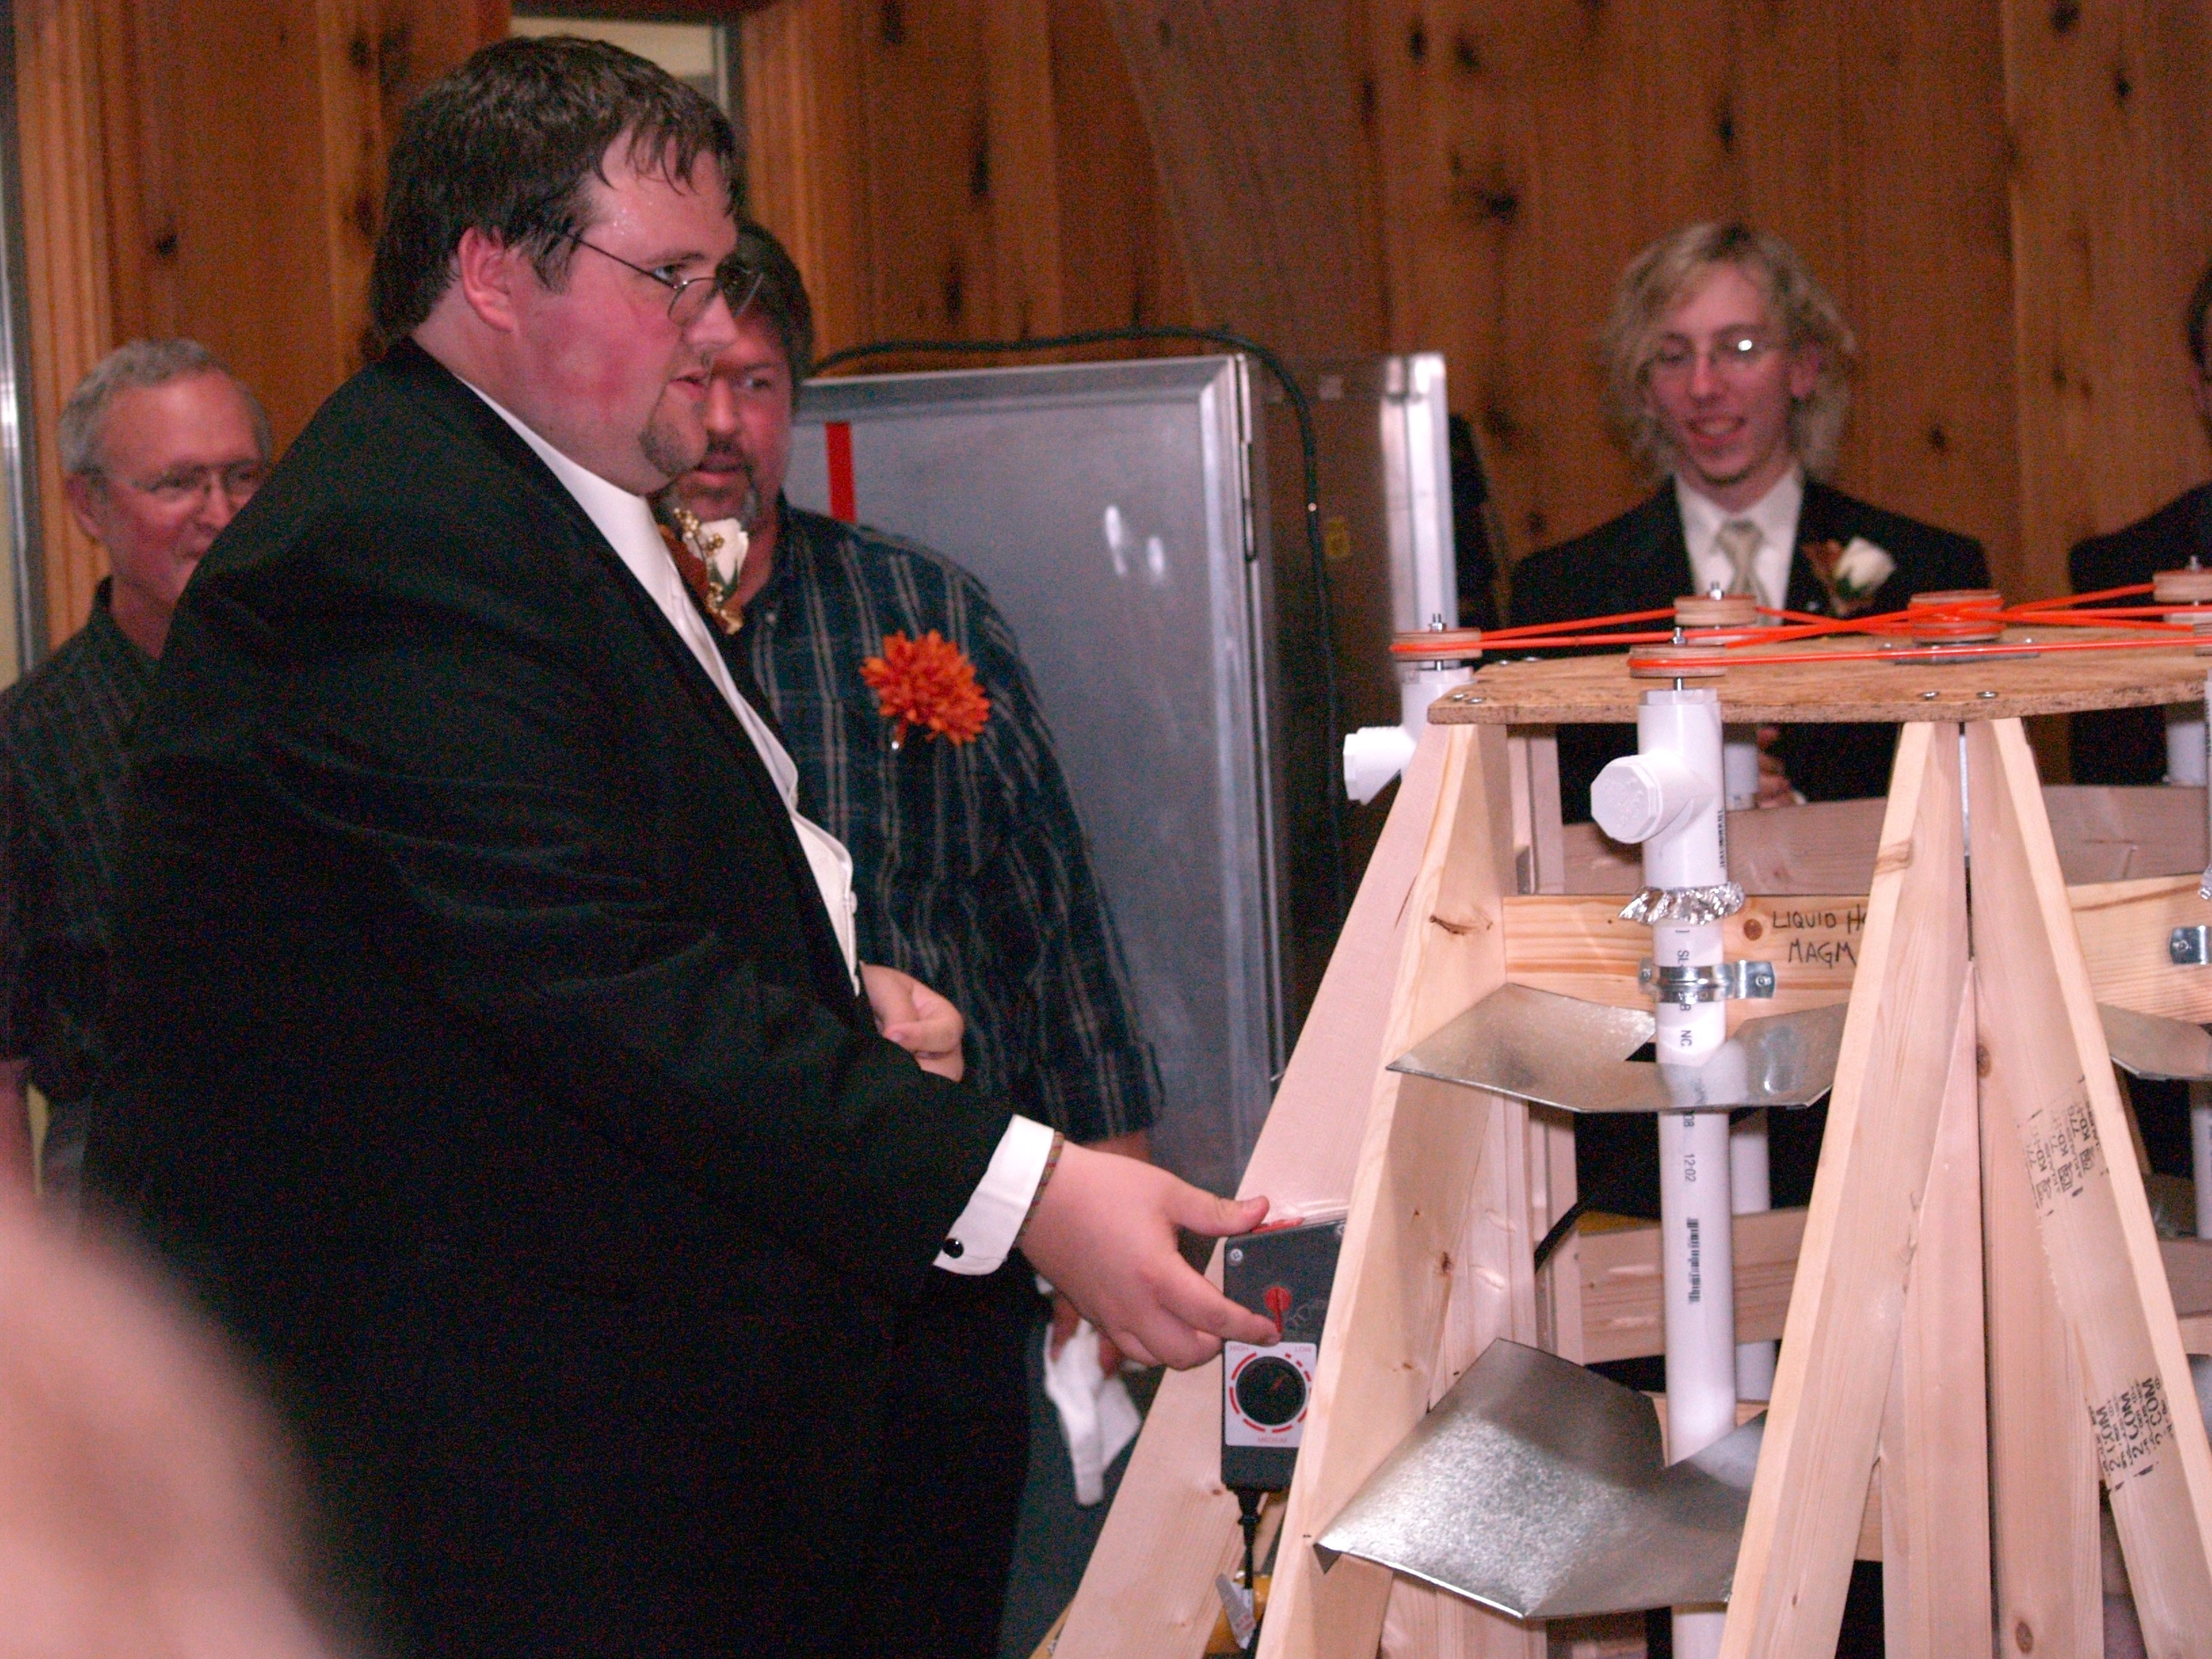 How To Build A Talladega Nights Inspired Six Cheese Fountain